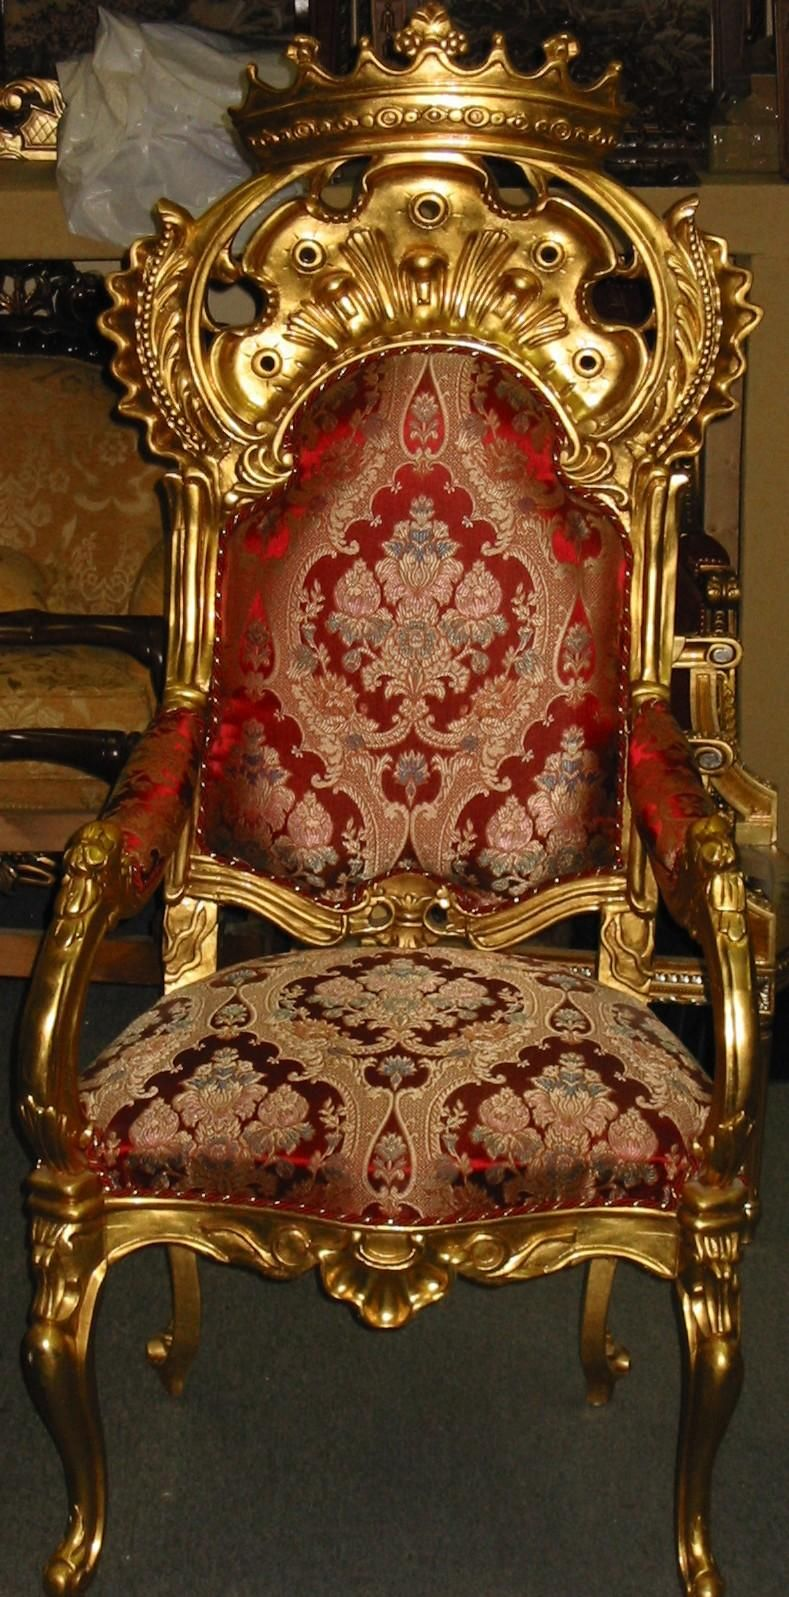 royal chairs for sale ChairsRoyalVictorianLouis styleLIVING